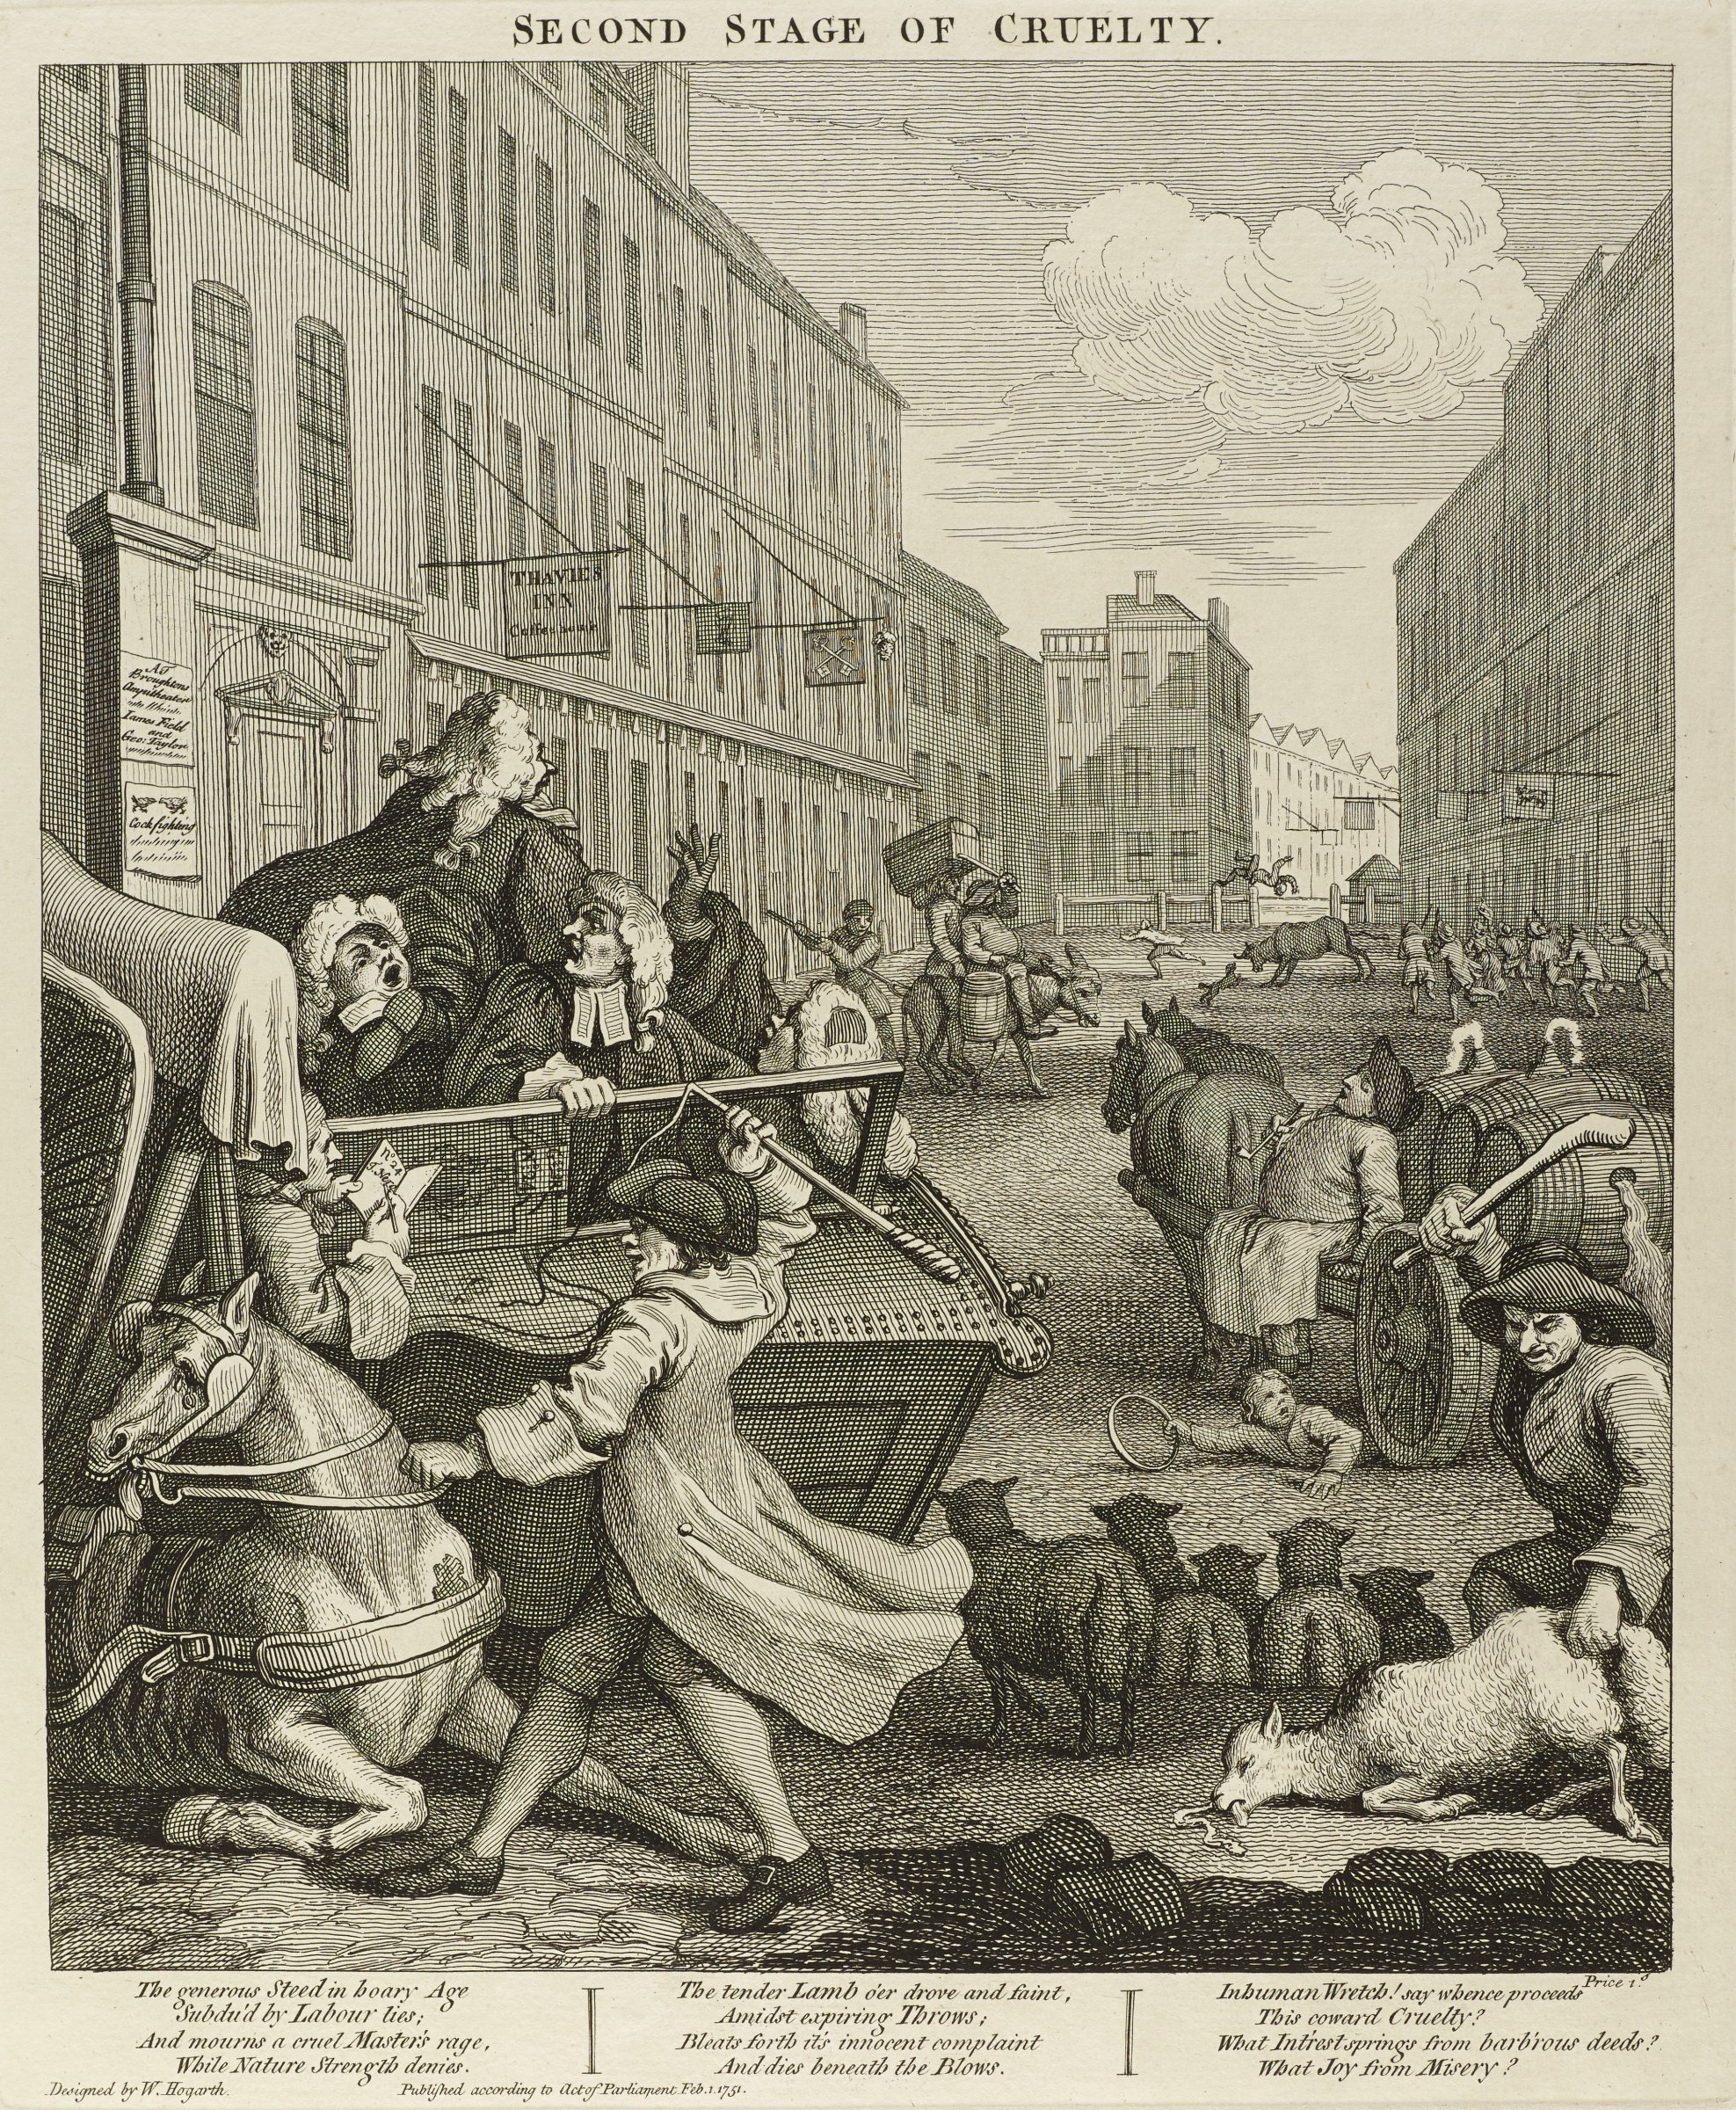 Scene on a street with men on carriages and riding on donkies. Men are hitting animals throughout the scene. In the background a bull toss a man in the air. Hogarth published this set to alert his contemporaries about the cruel treatment that animals had to endure in eighteenth century England.